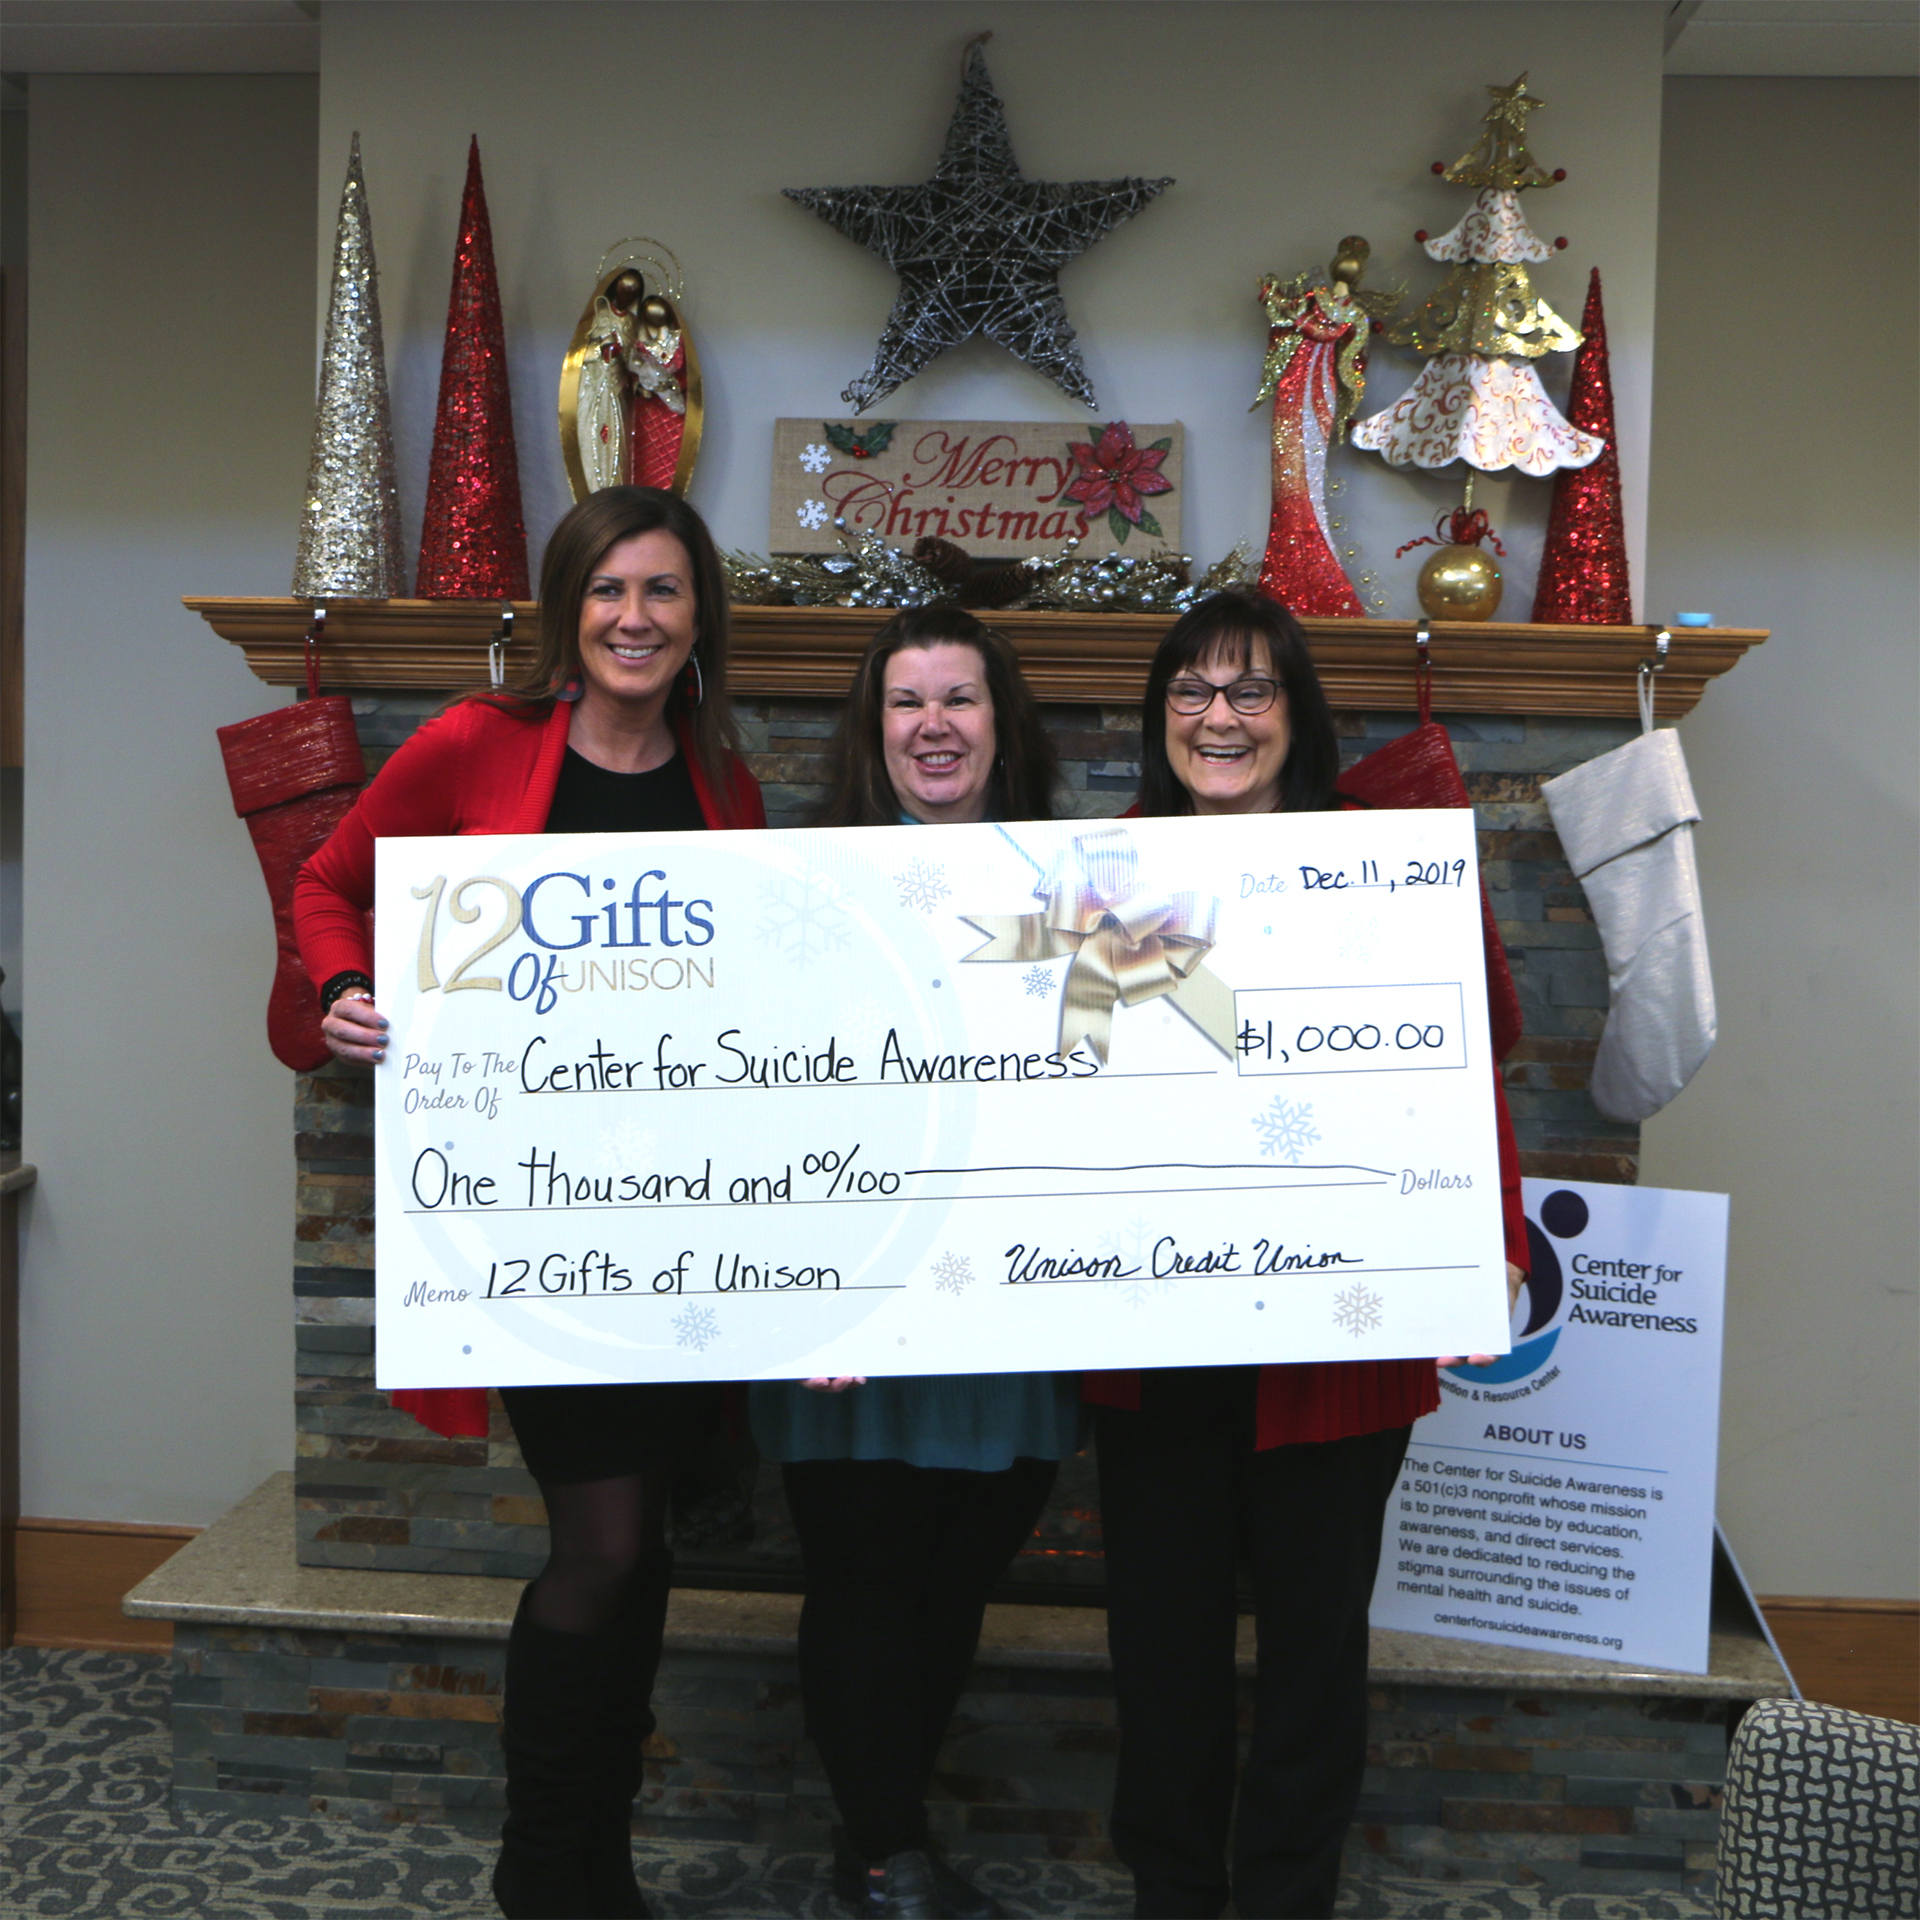 center for suicide awareness wi donation from unison